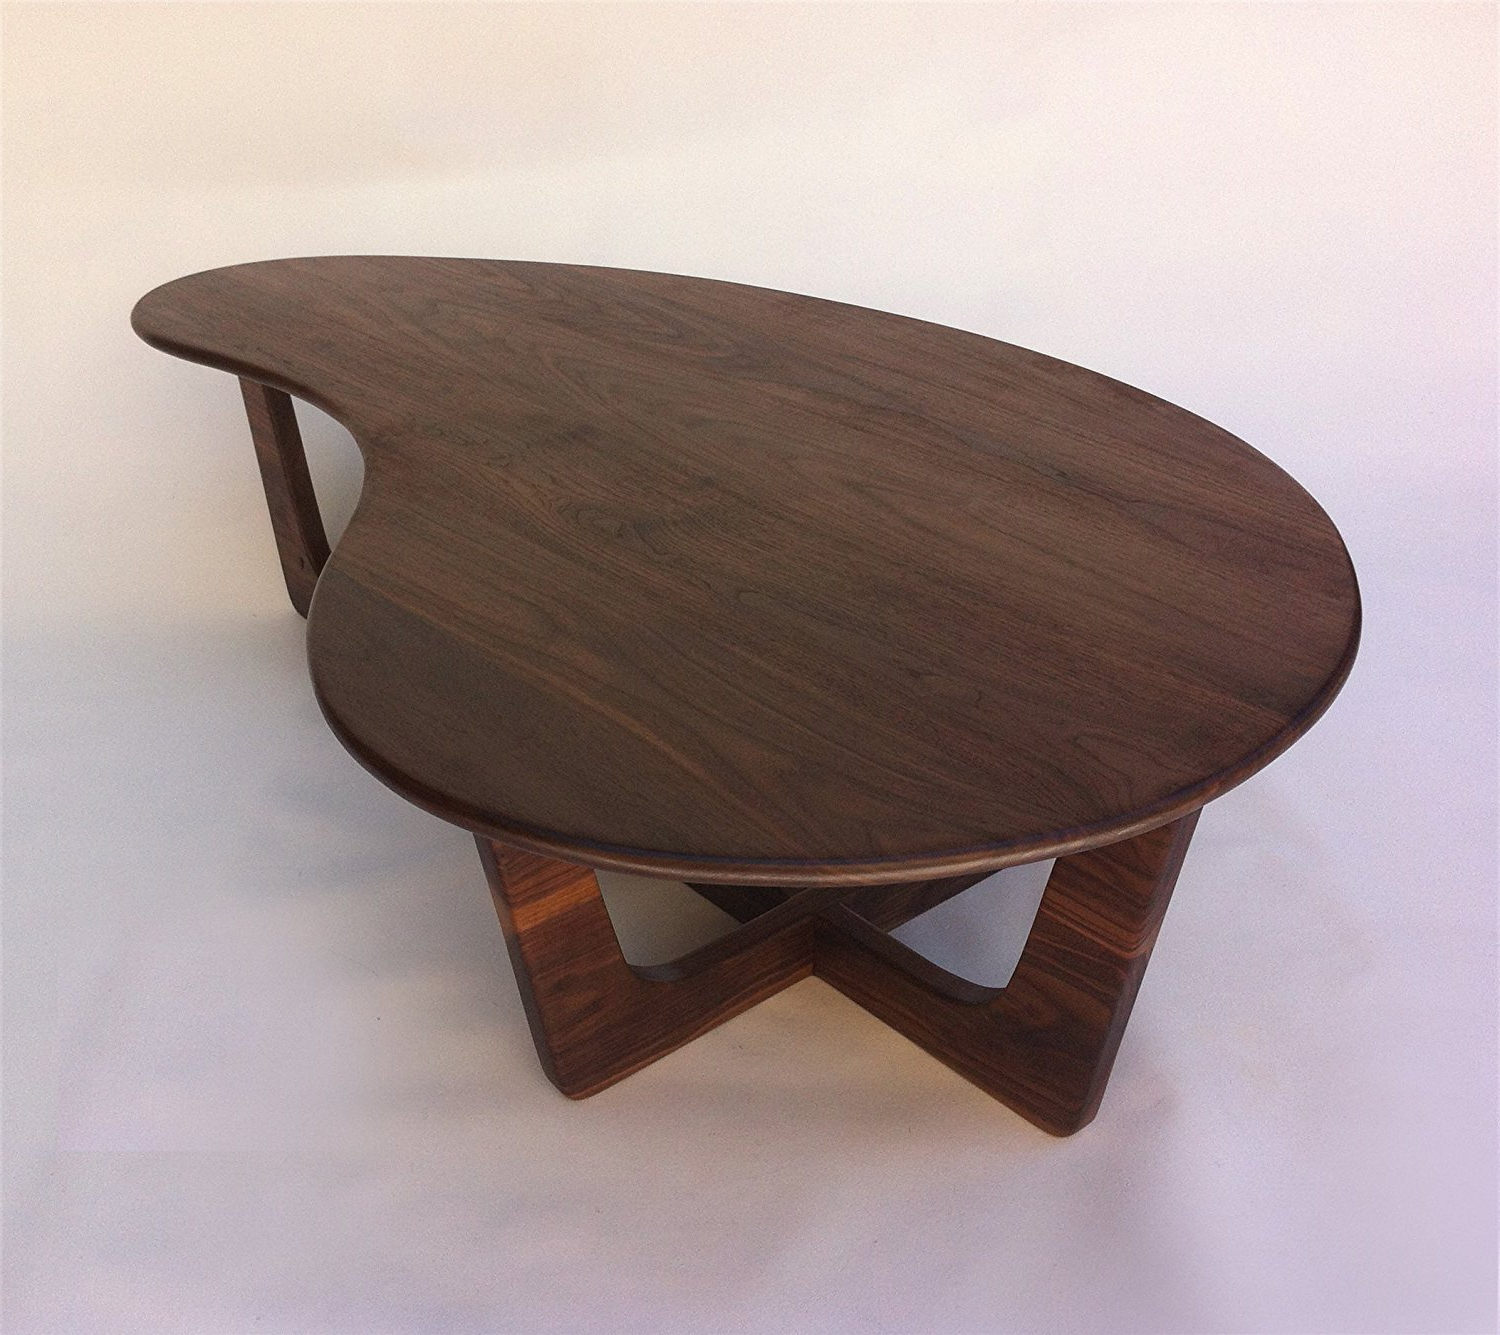 Newest Furniture: Alluring Kidney Shaped Coffee Table With Futuristic With Jelly Bean Coffee Tables (Gallery 10 of 20)